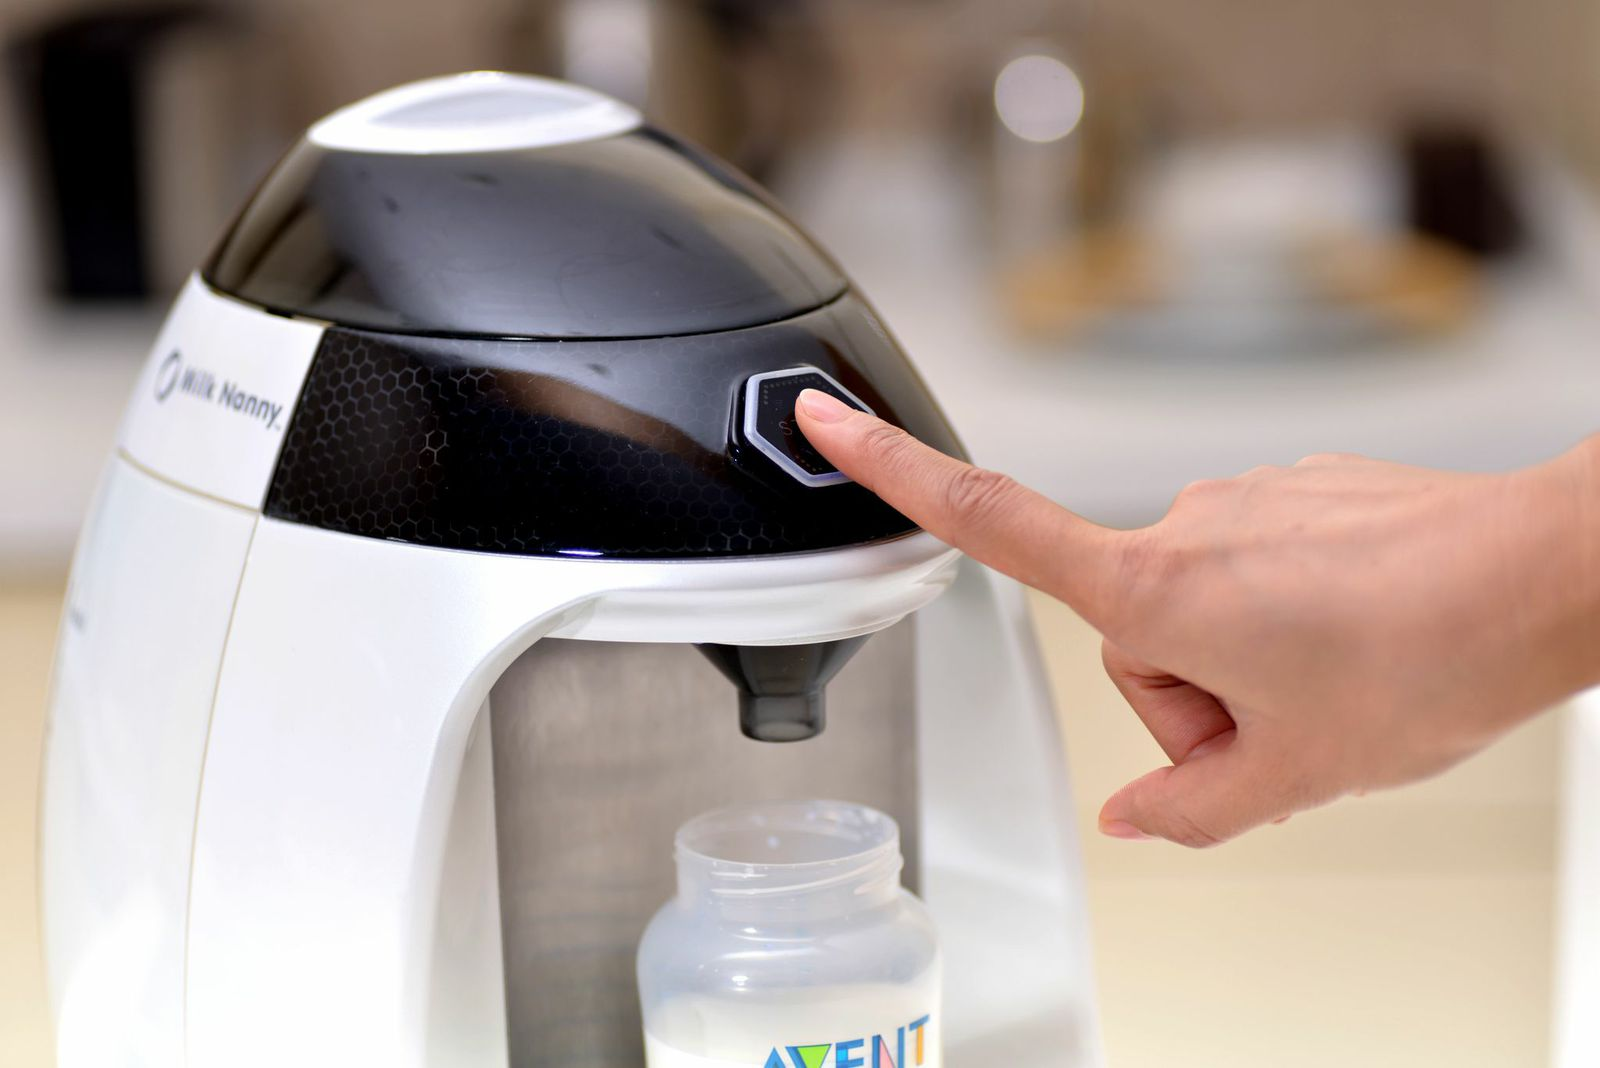 Milk Nanny Smart Formula Maker Preview - CNET